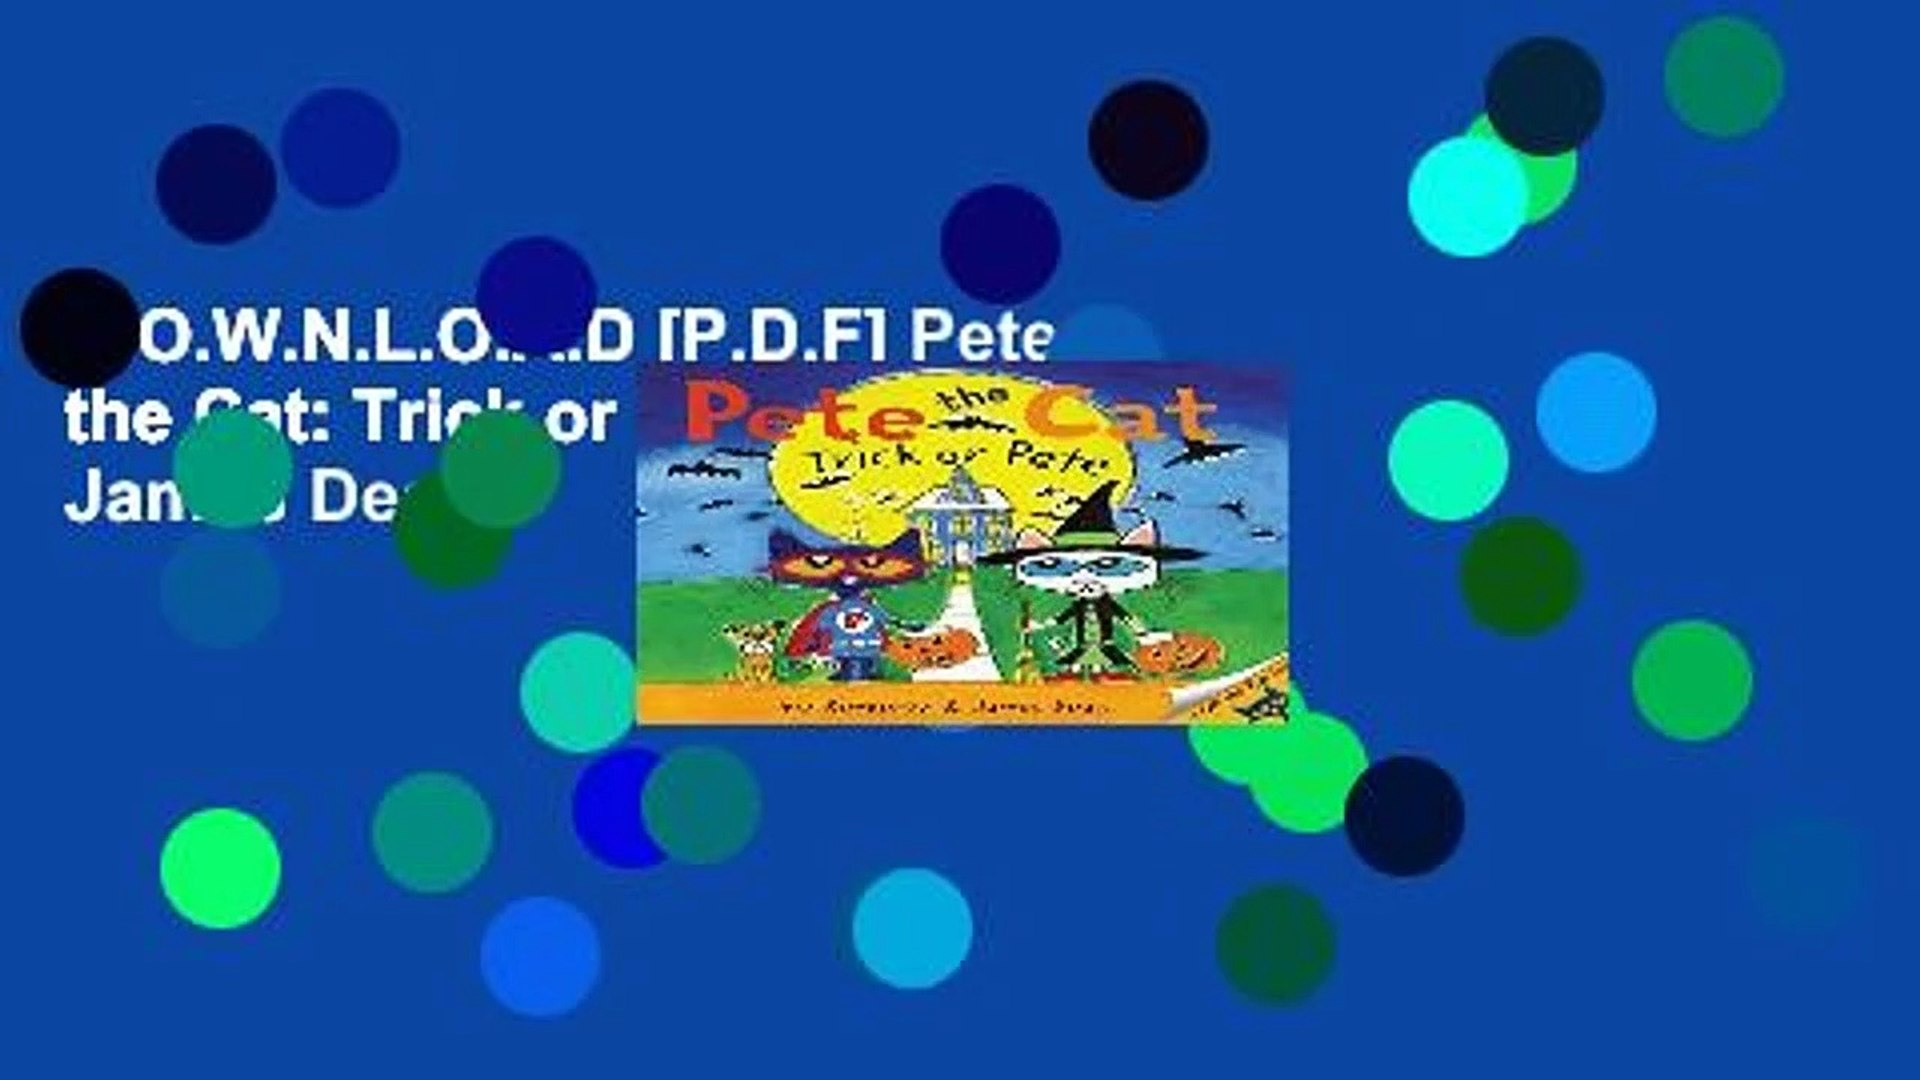 D.O.W.N.L.O.A.D [P.D.F] Pete the Cat: Trick or Pete by James Dean